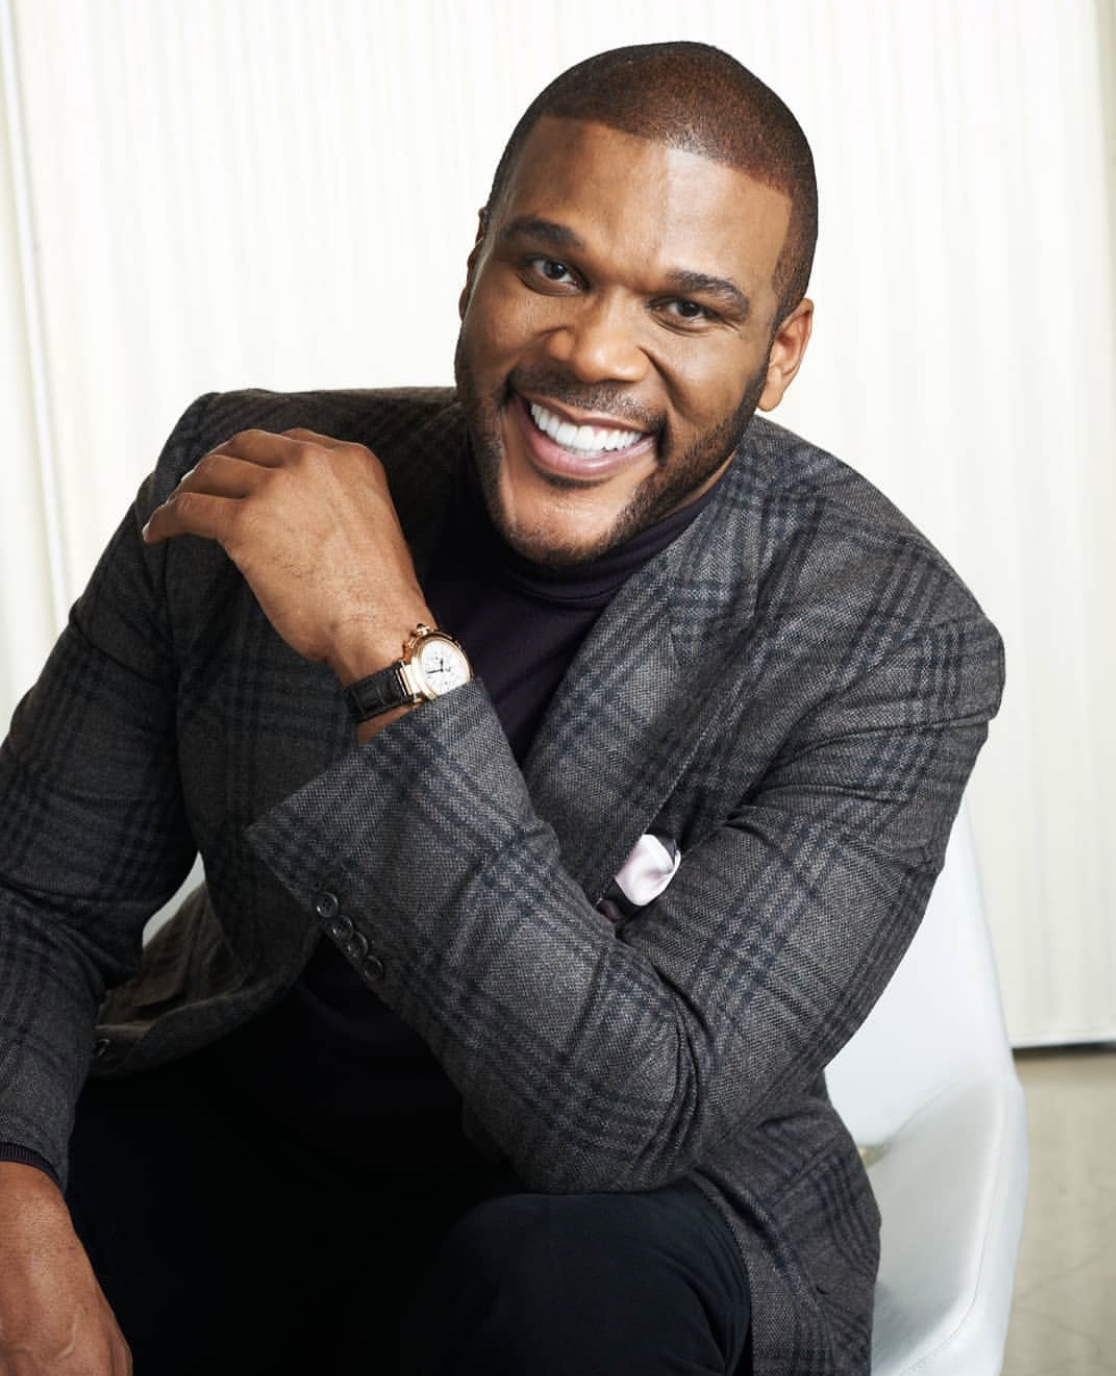 Tyler-Perry-net-worth-self-made-billionaire